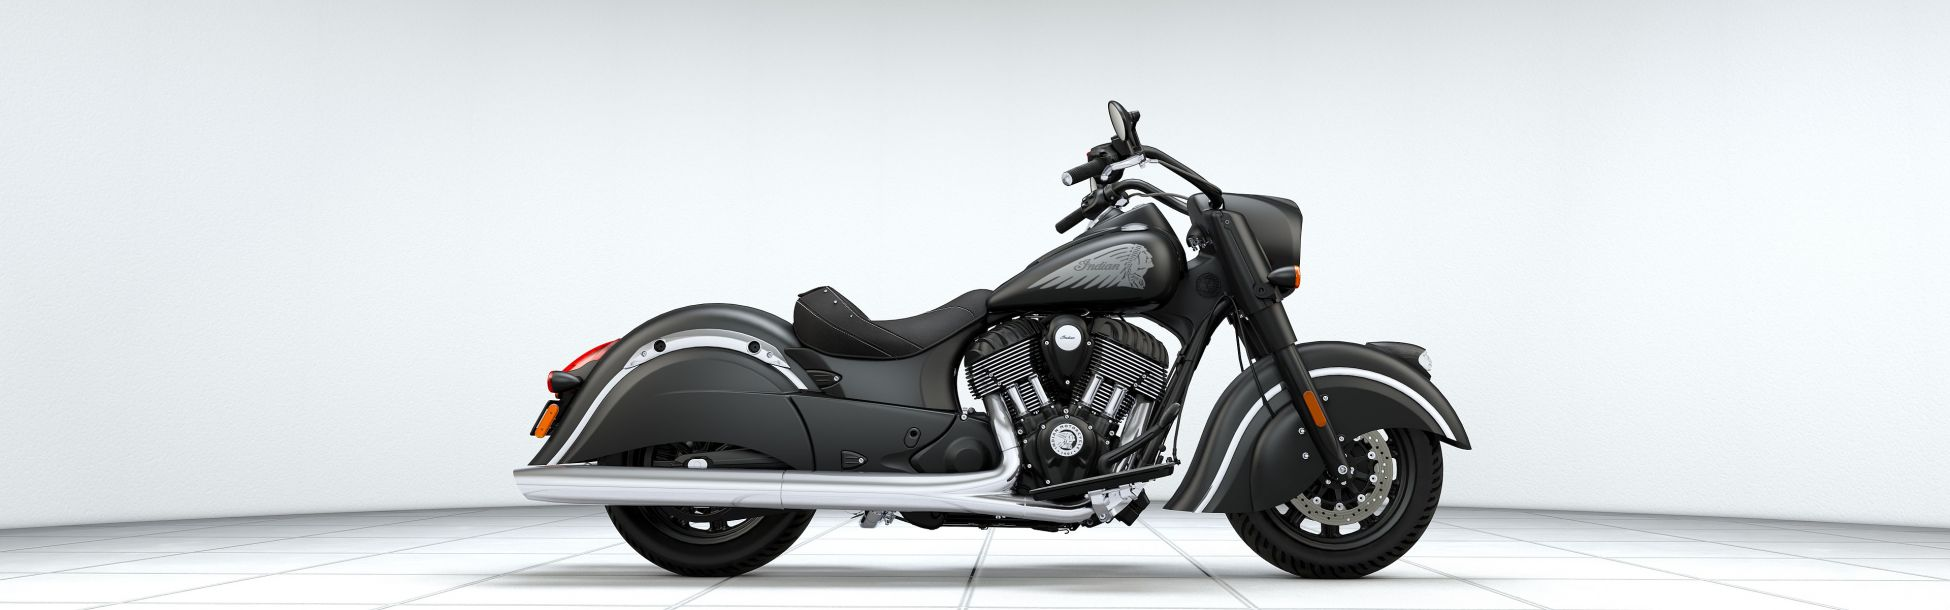 cruisers-indian-chief-dark-horse